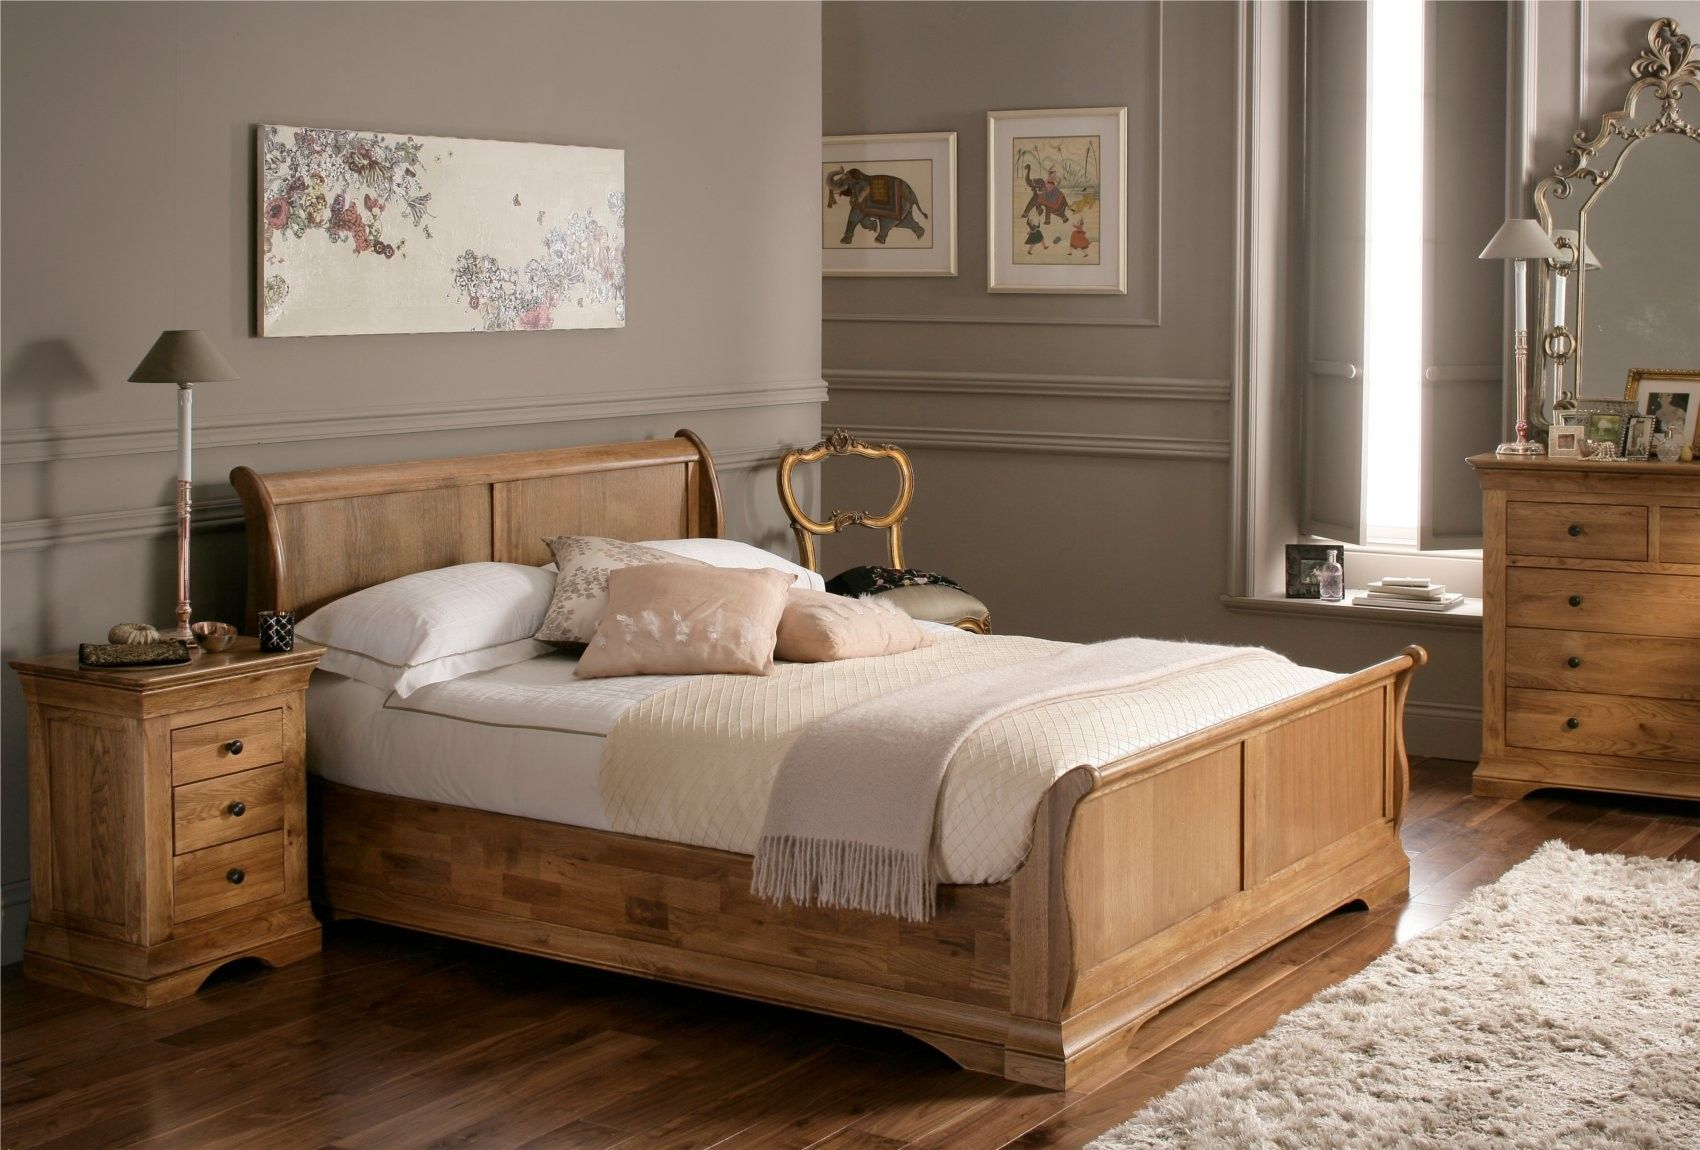 An Extremely Good Bed Is High Priority In The Dream House Actually Like The Look Of This Whole